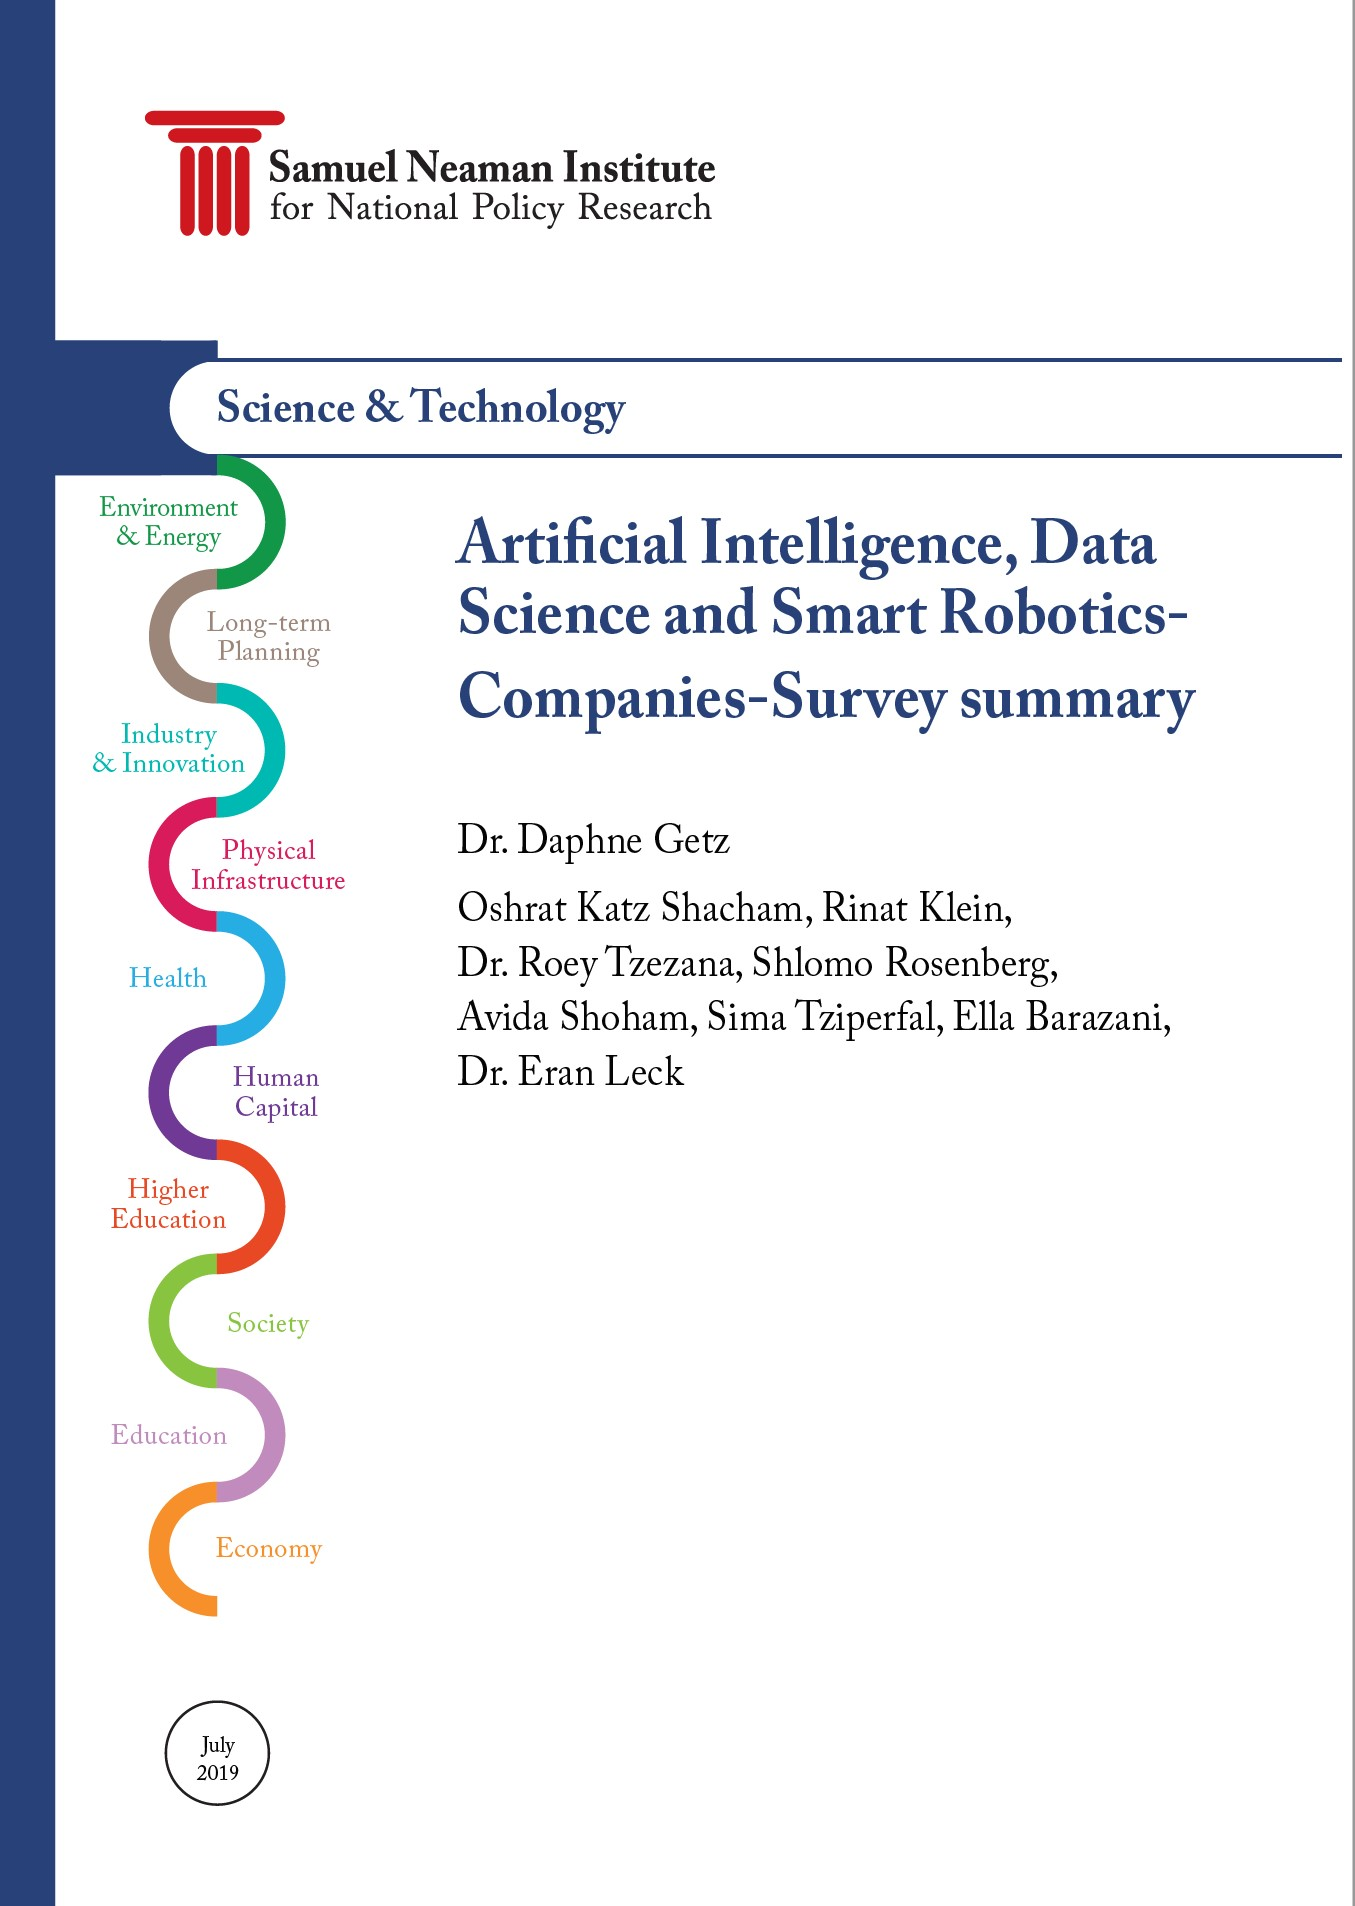 Artifcial Intelligence, Data Science and Smart Robotics Companies-Survey summary